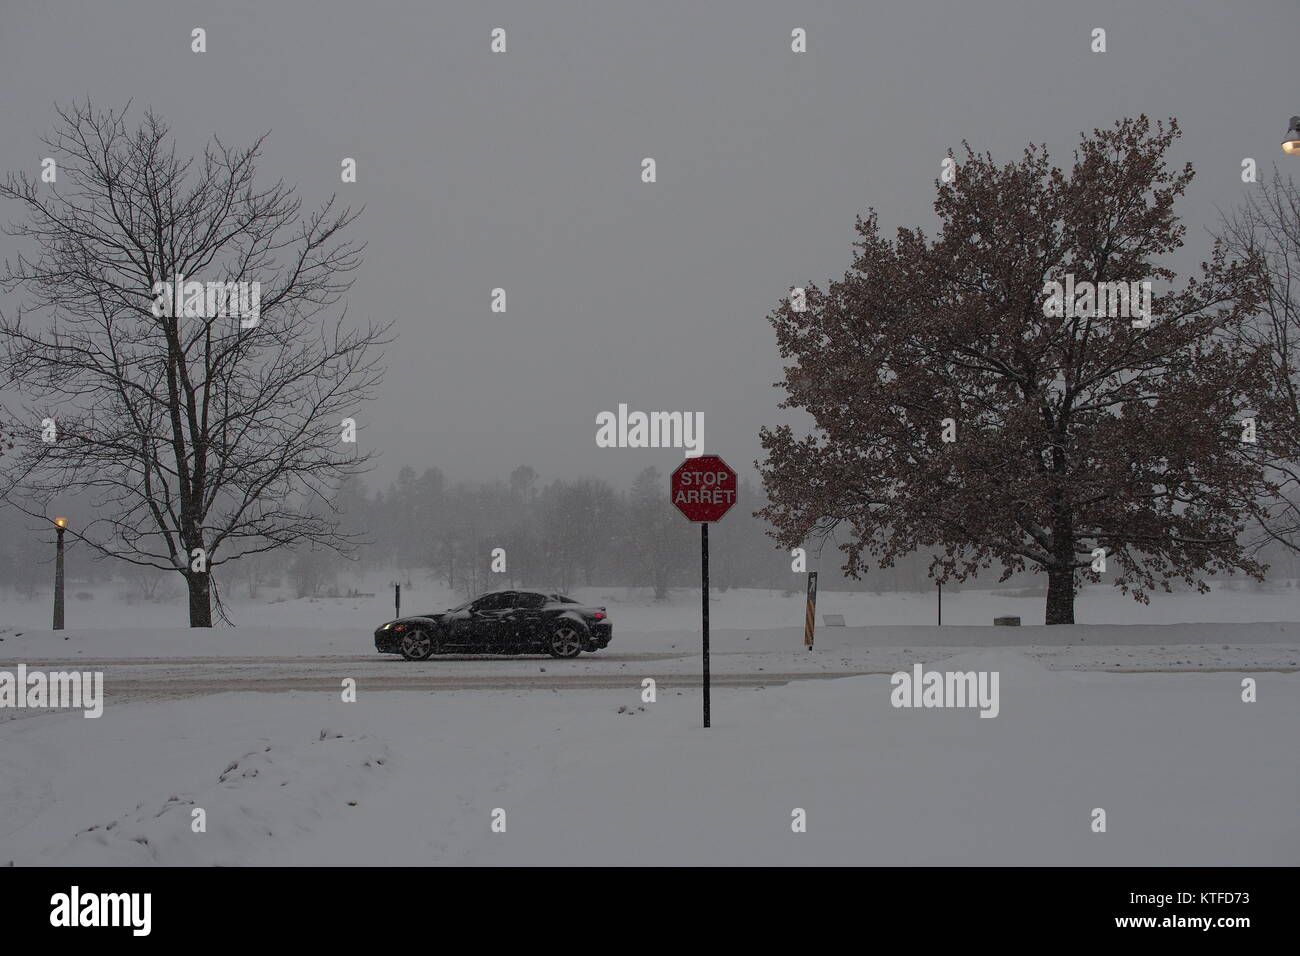 A black sports car drives through a snow storm at the intersection of Lakeside Ave. and Queen Elizabeth Dr., Dow's - Stock Image